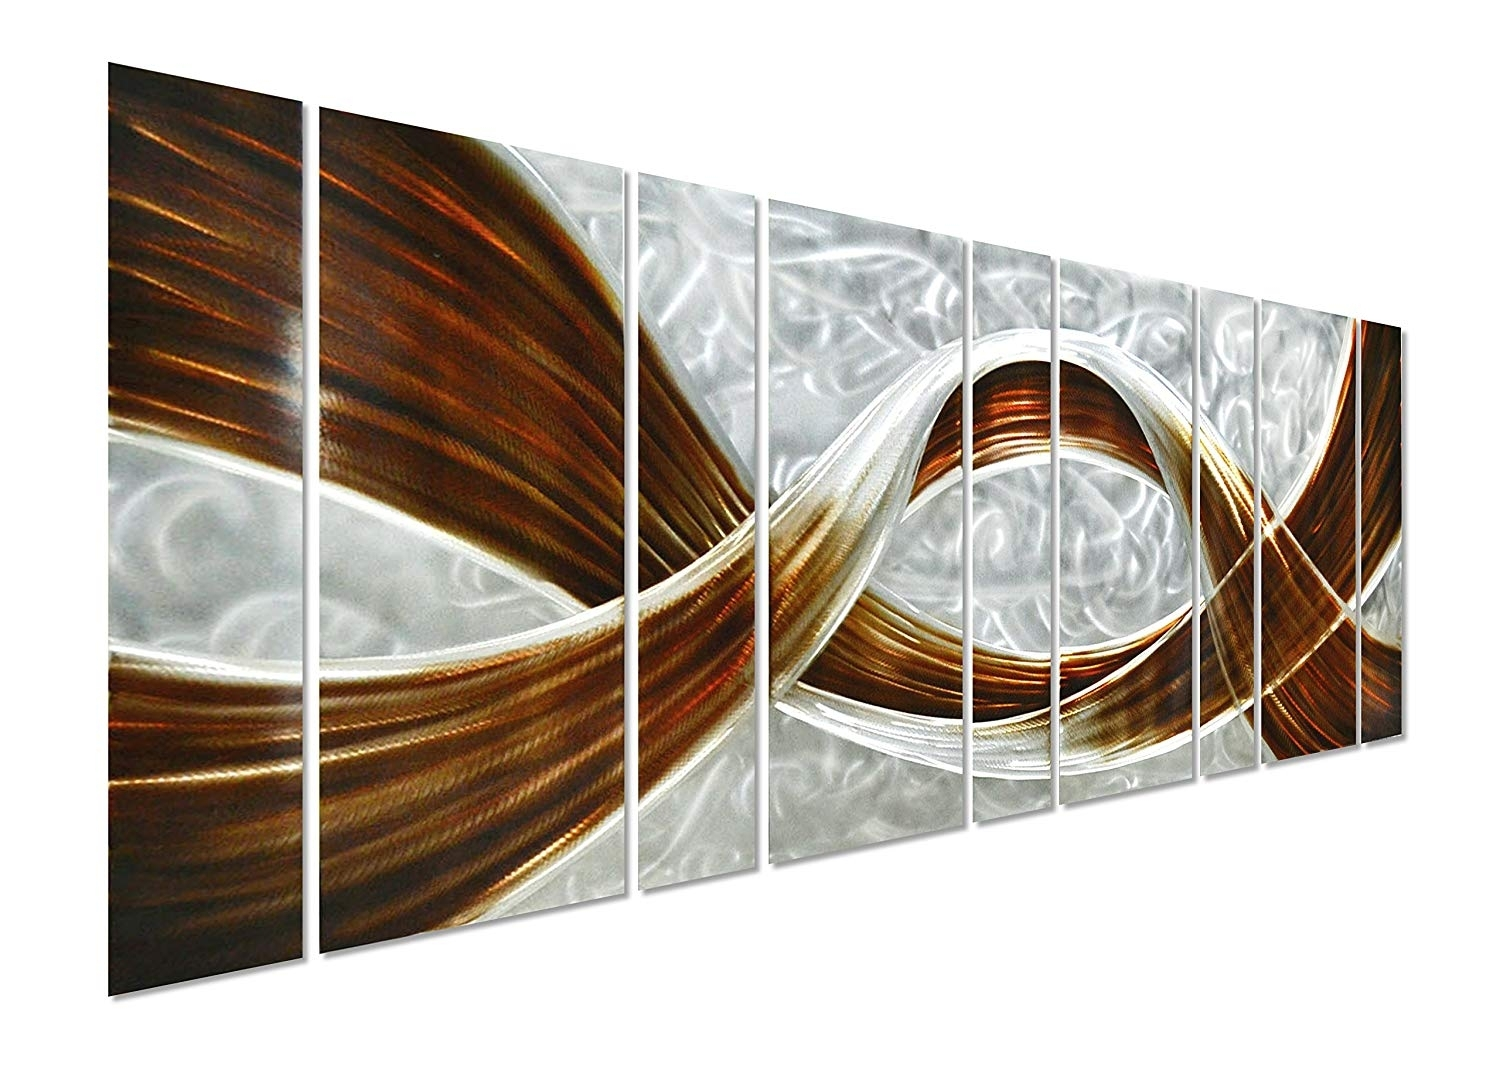 Amazon: Pure Art Caramel Desire Metal Wall Art, Giant Scale with regard to Large Metal Wall Art (Image 3 of 20)